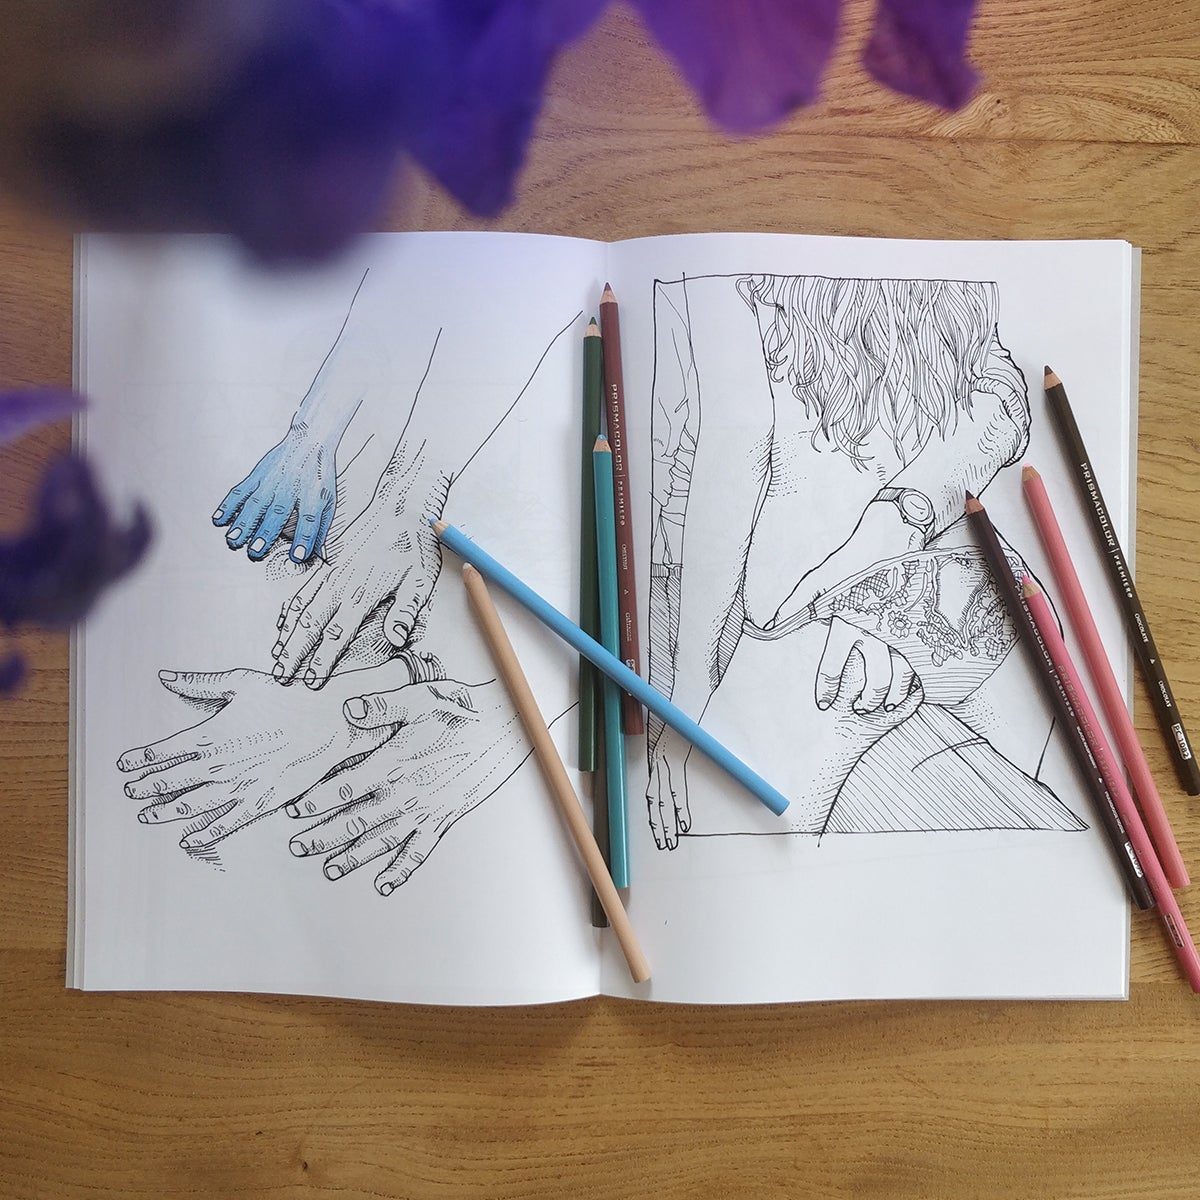 Image of Between The Lines, a Colouring Book by yssa, Volume I